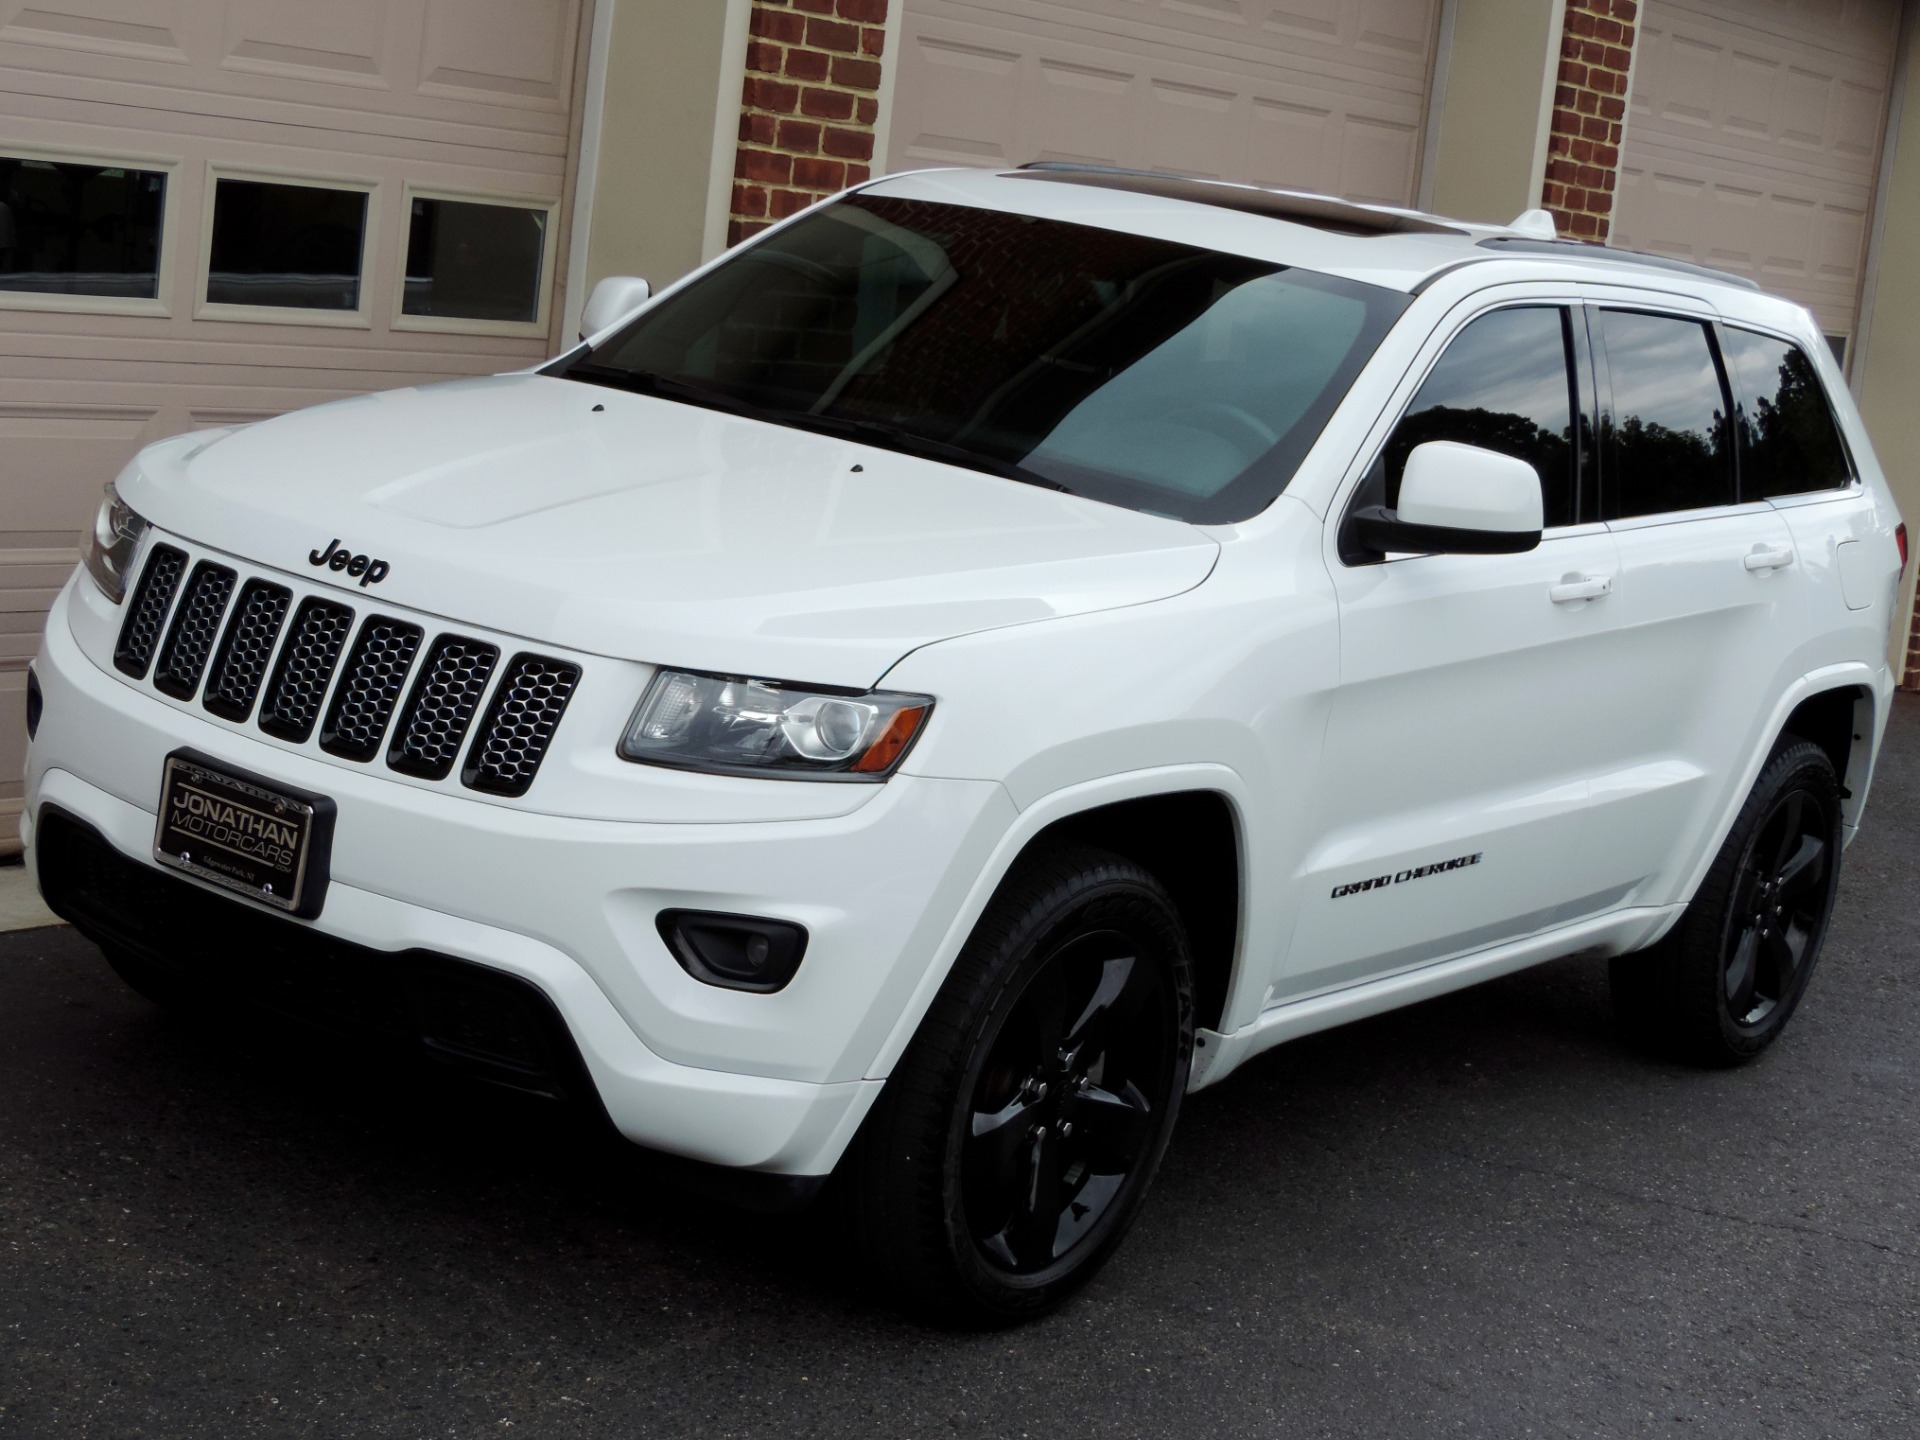 2015 jeep grand cherokee altitude stock 775497 for sale near edgewater park nj nj jeep dealer. Black Bedroom Furniture Sets. Home Design Ideas